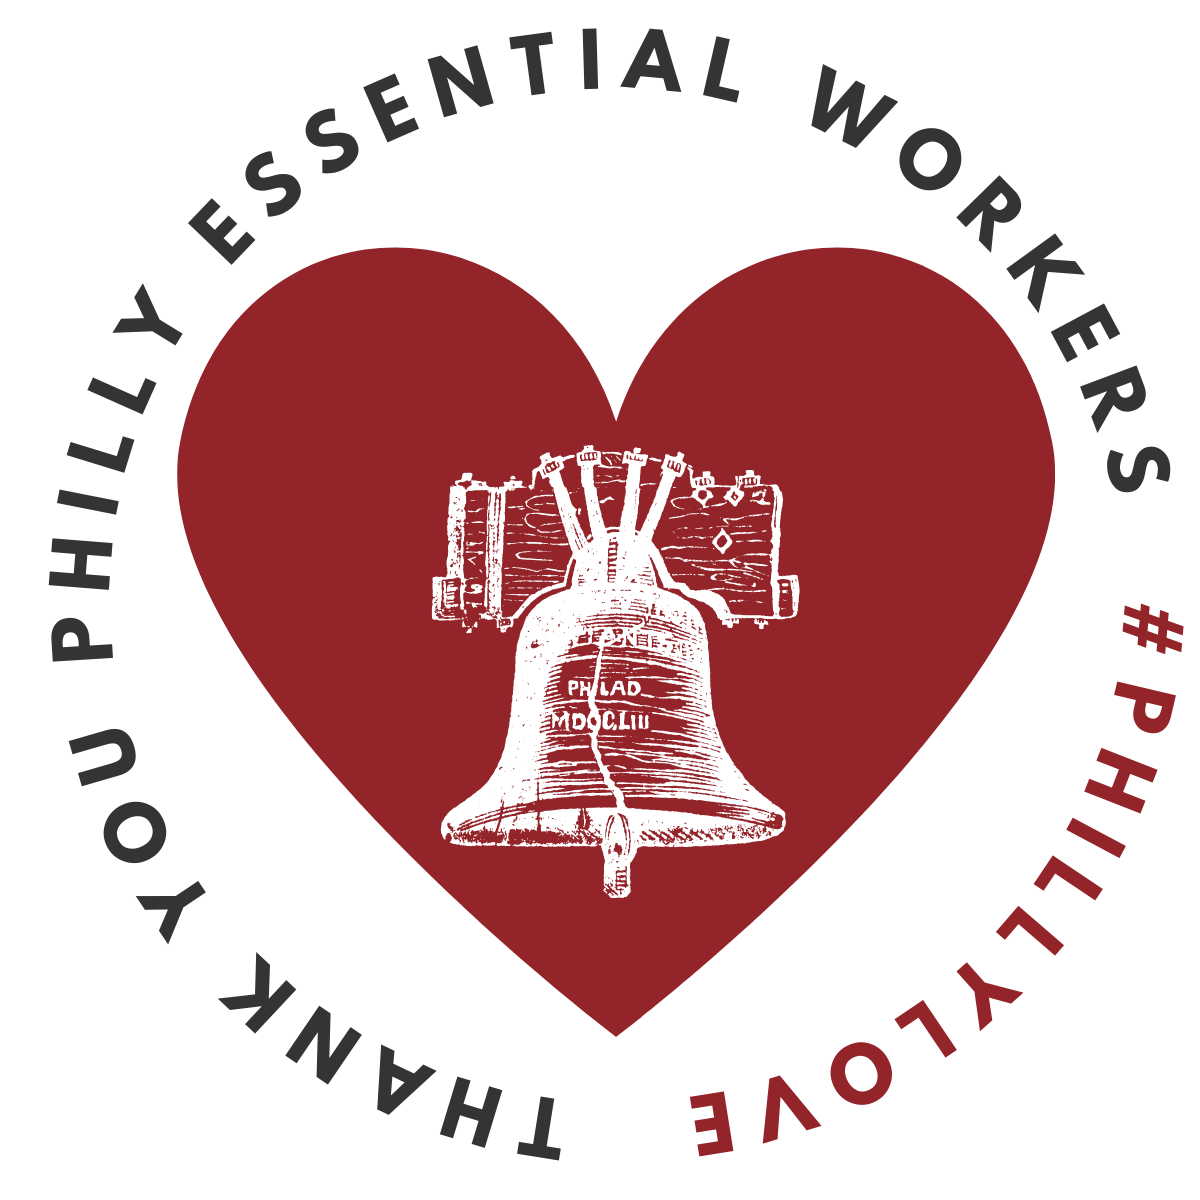 Philly Love logo: Thank You Philly Essential Workers #phillylove